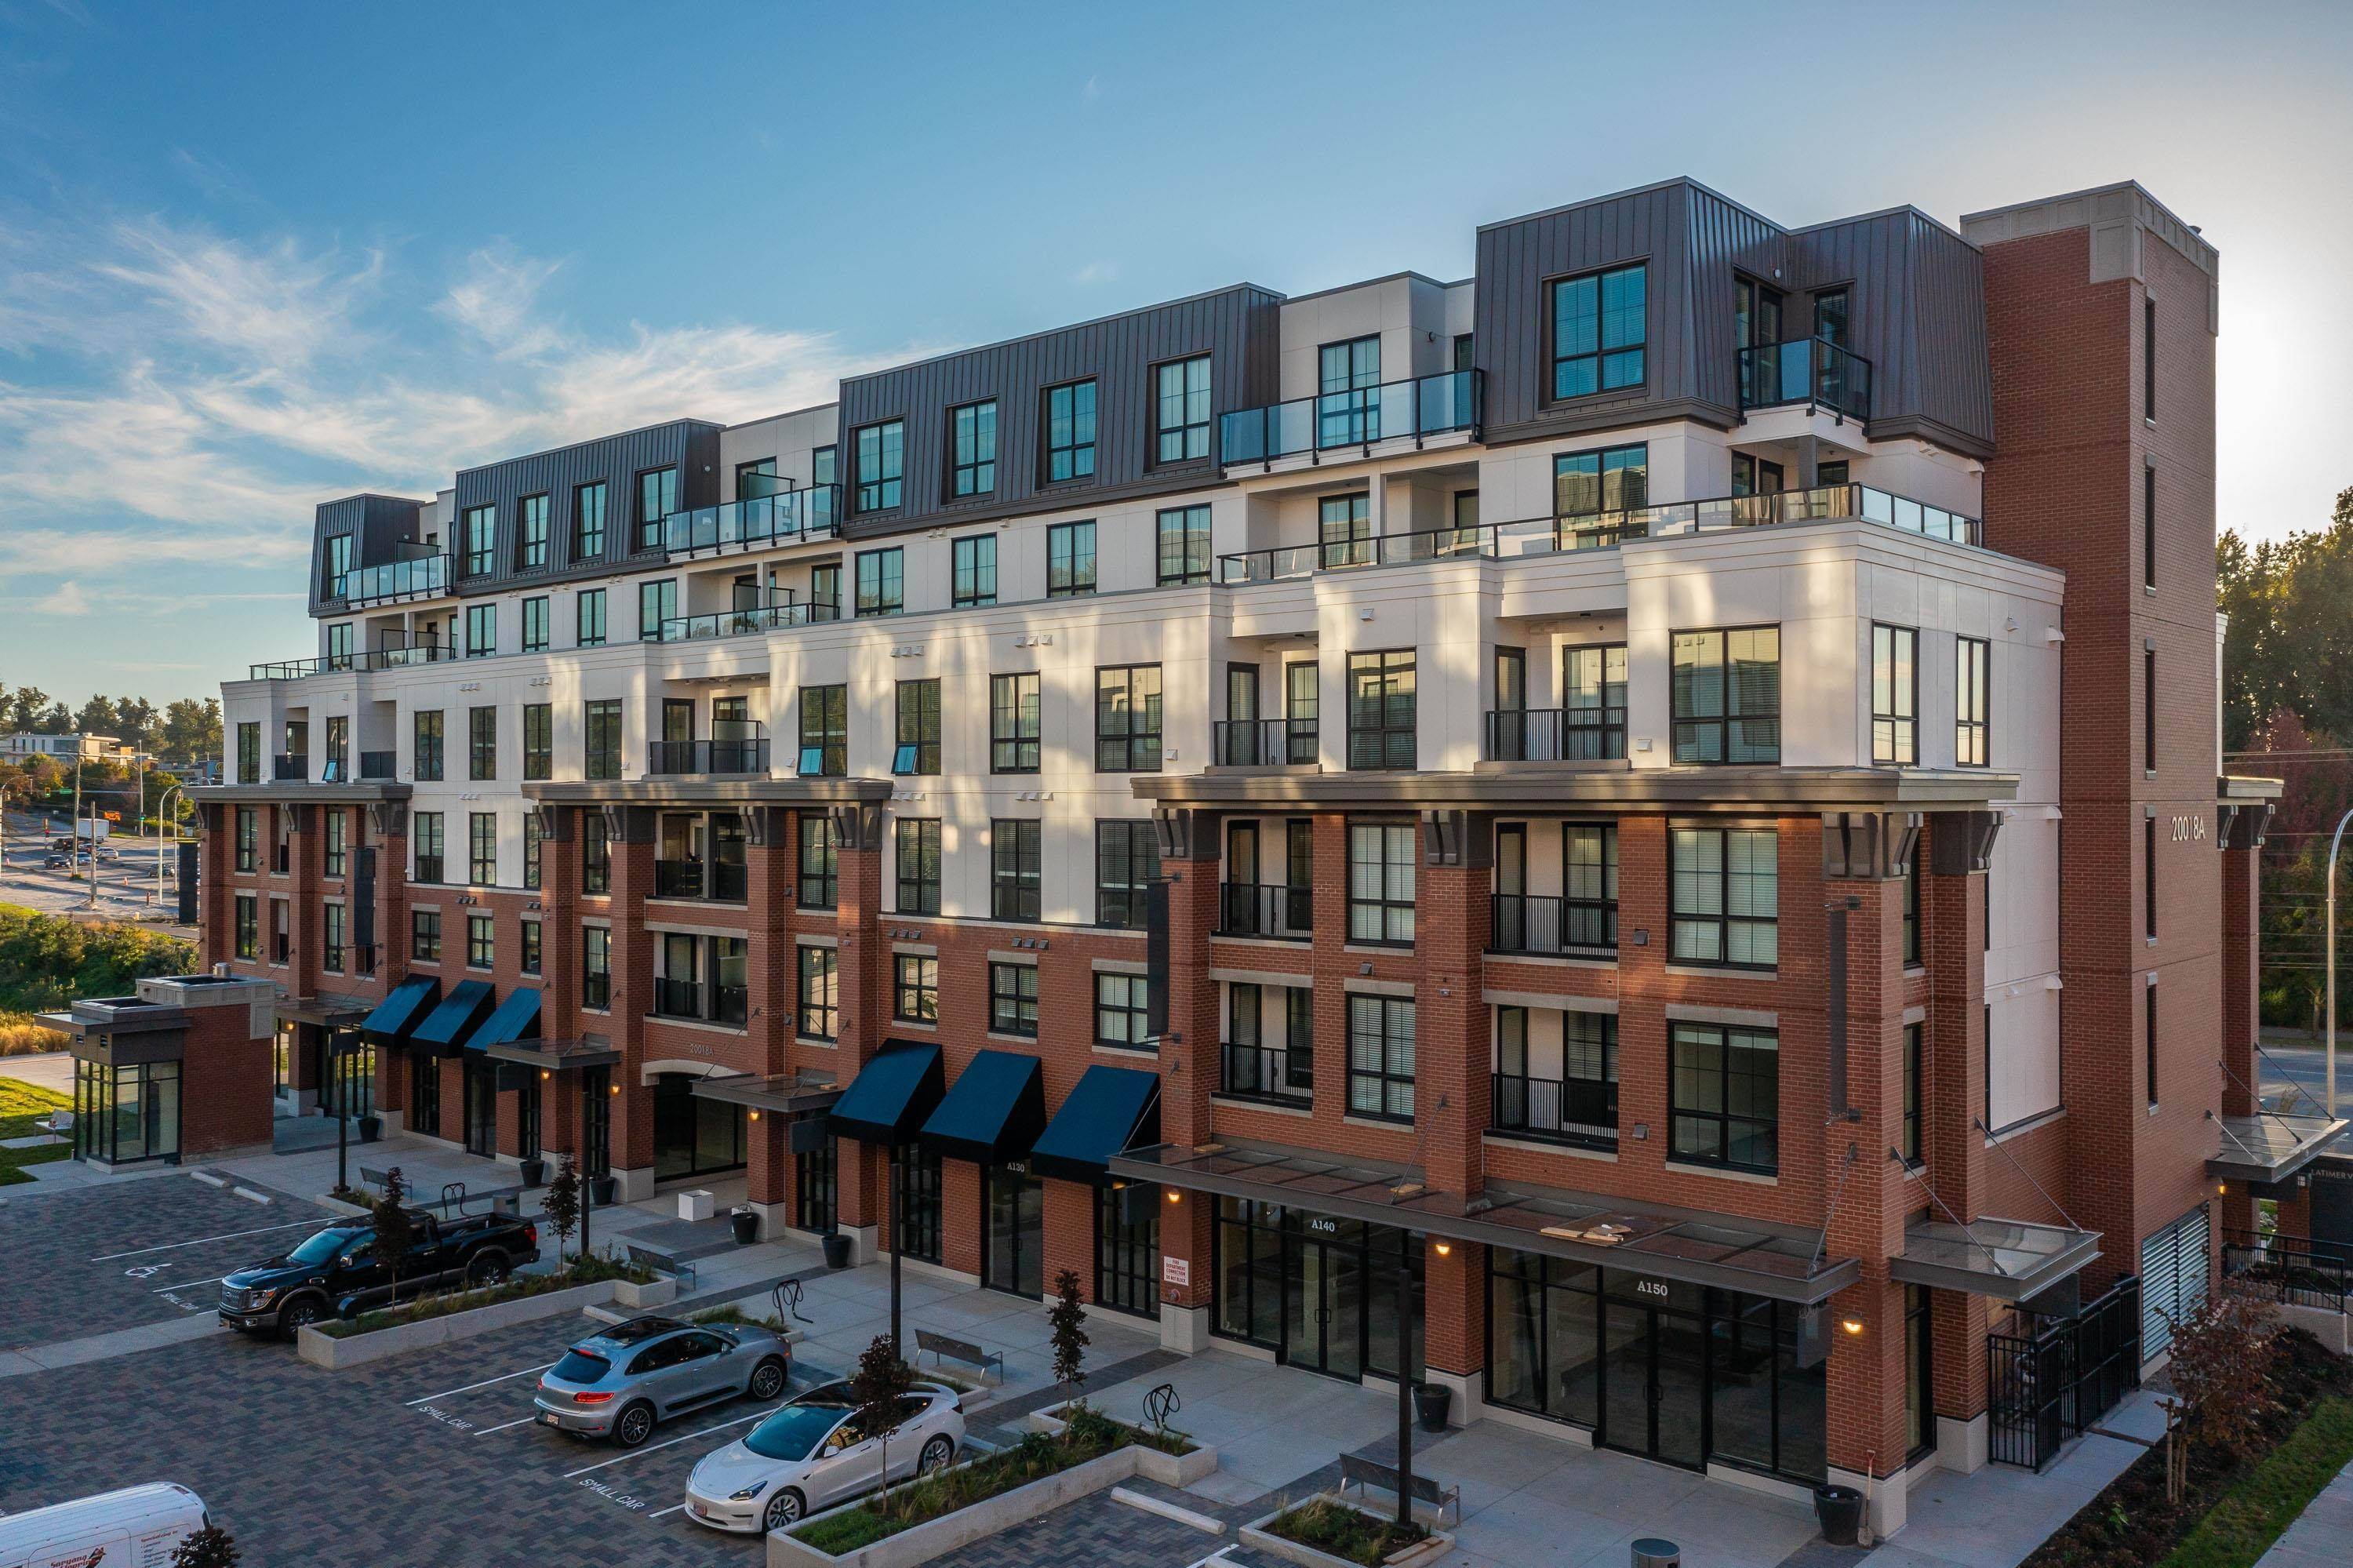 """Main Photo: A306 20018 83A Avenue in Langley: Willoughby Heights Condo for sale in """"Latimer Village at Latimer Heights"""" : MLS®# R2620857"""